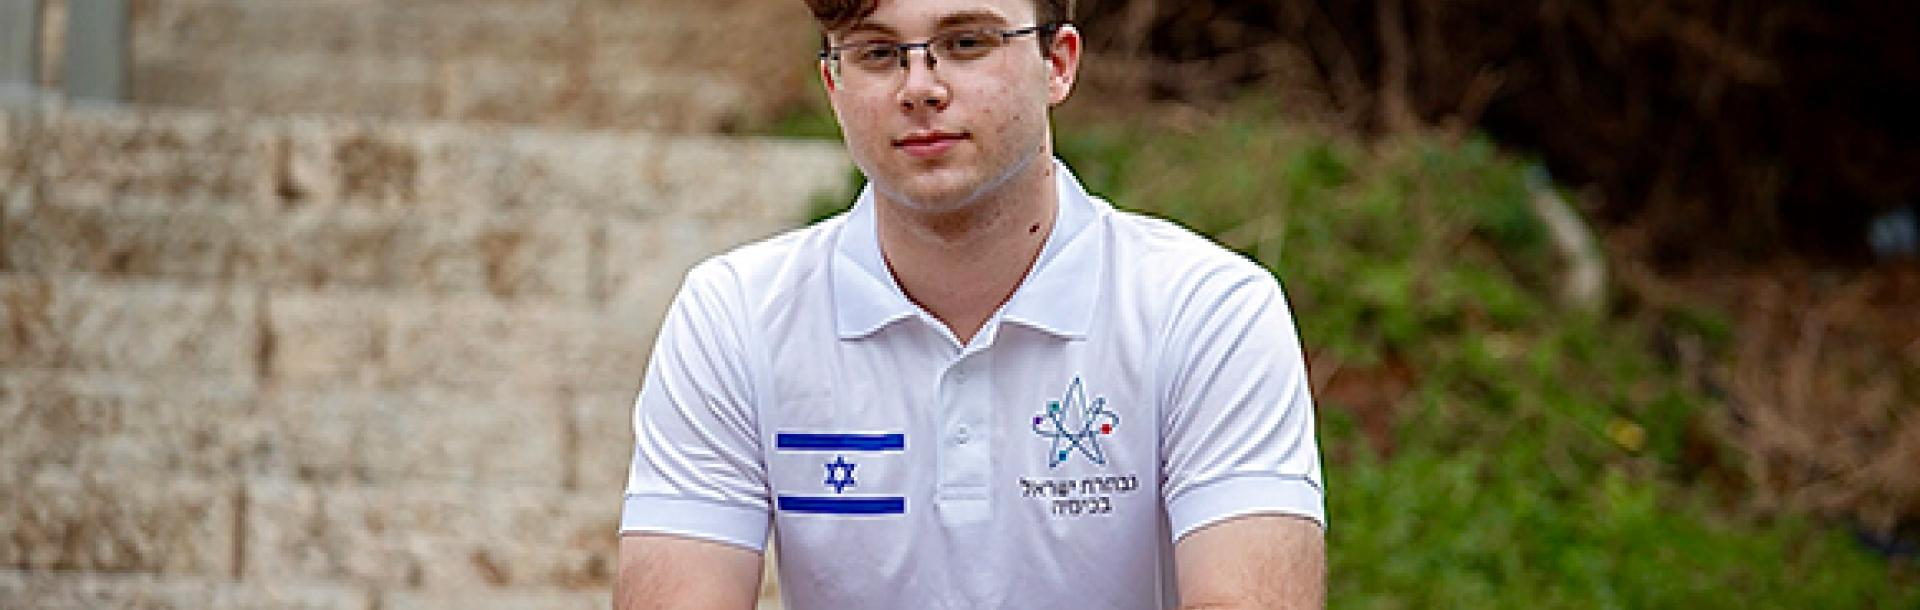 The School of Chemistry congratulates Roi Peer, who received a gold medal in the International Chemistry Olympiad